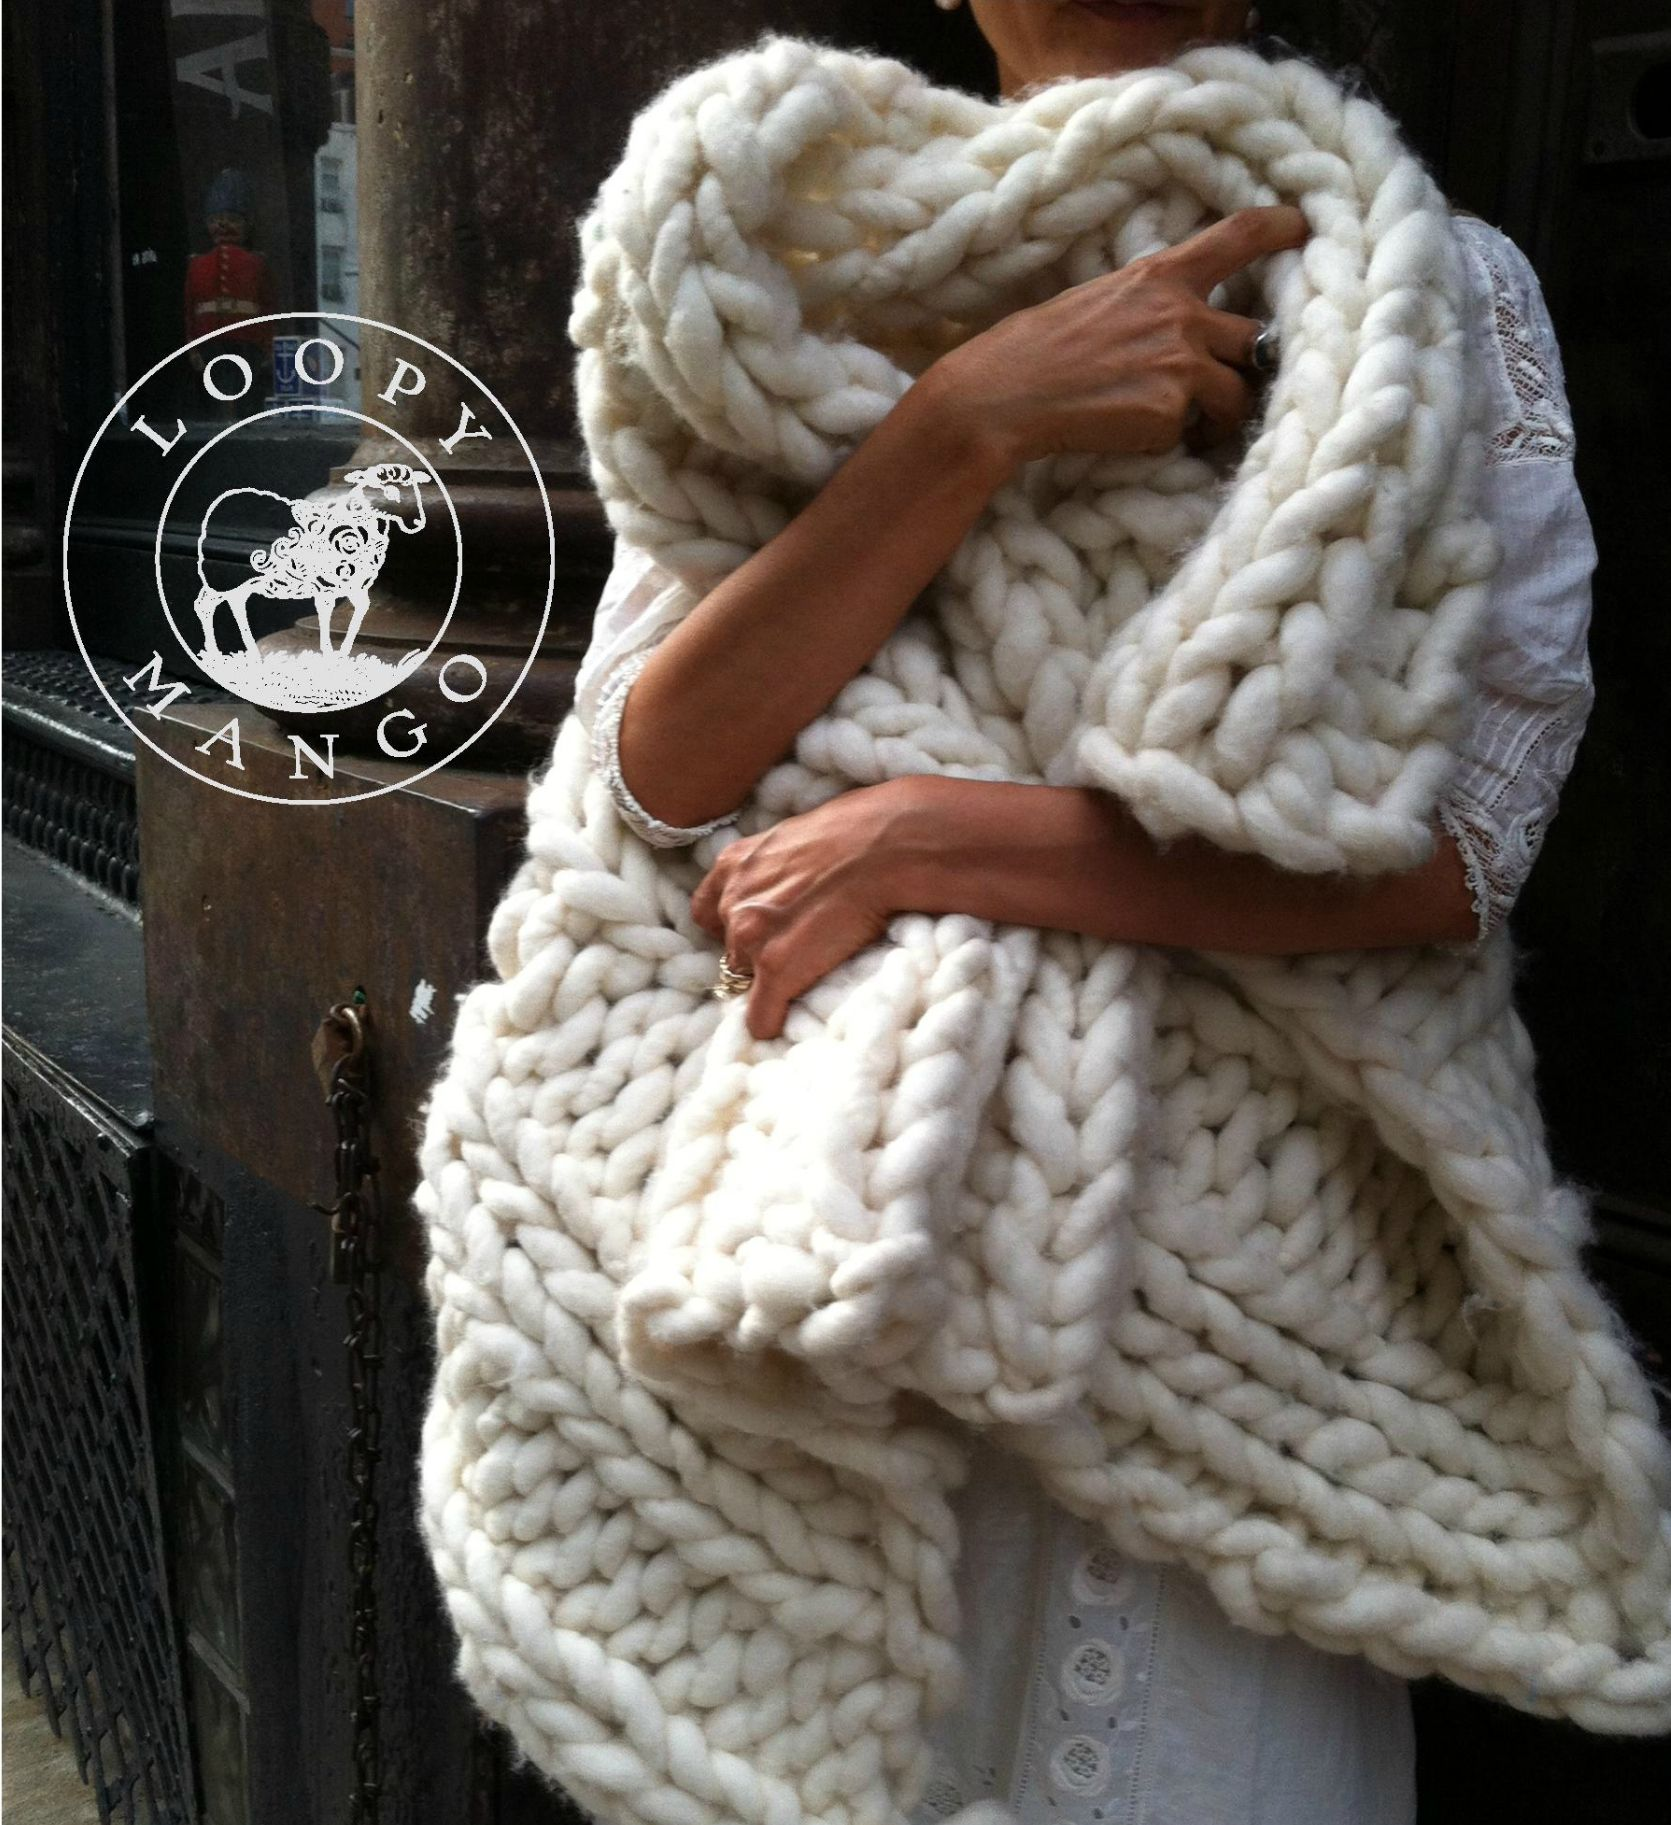 Chunky knit blanket made with Big Loop yarn - available as a ...